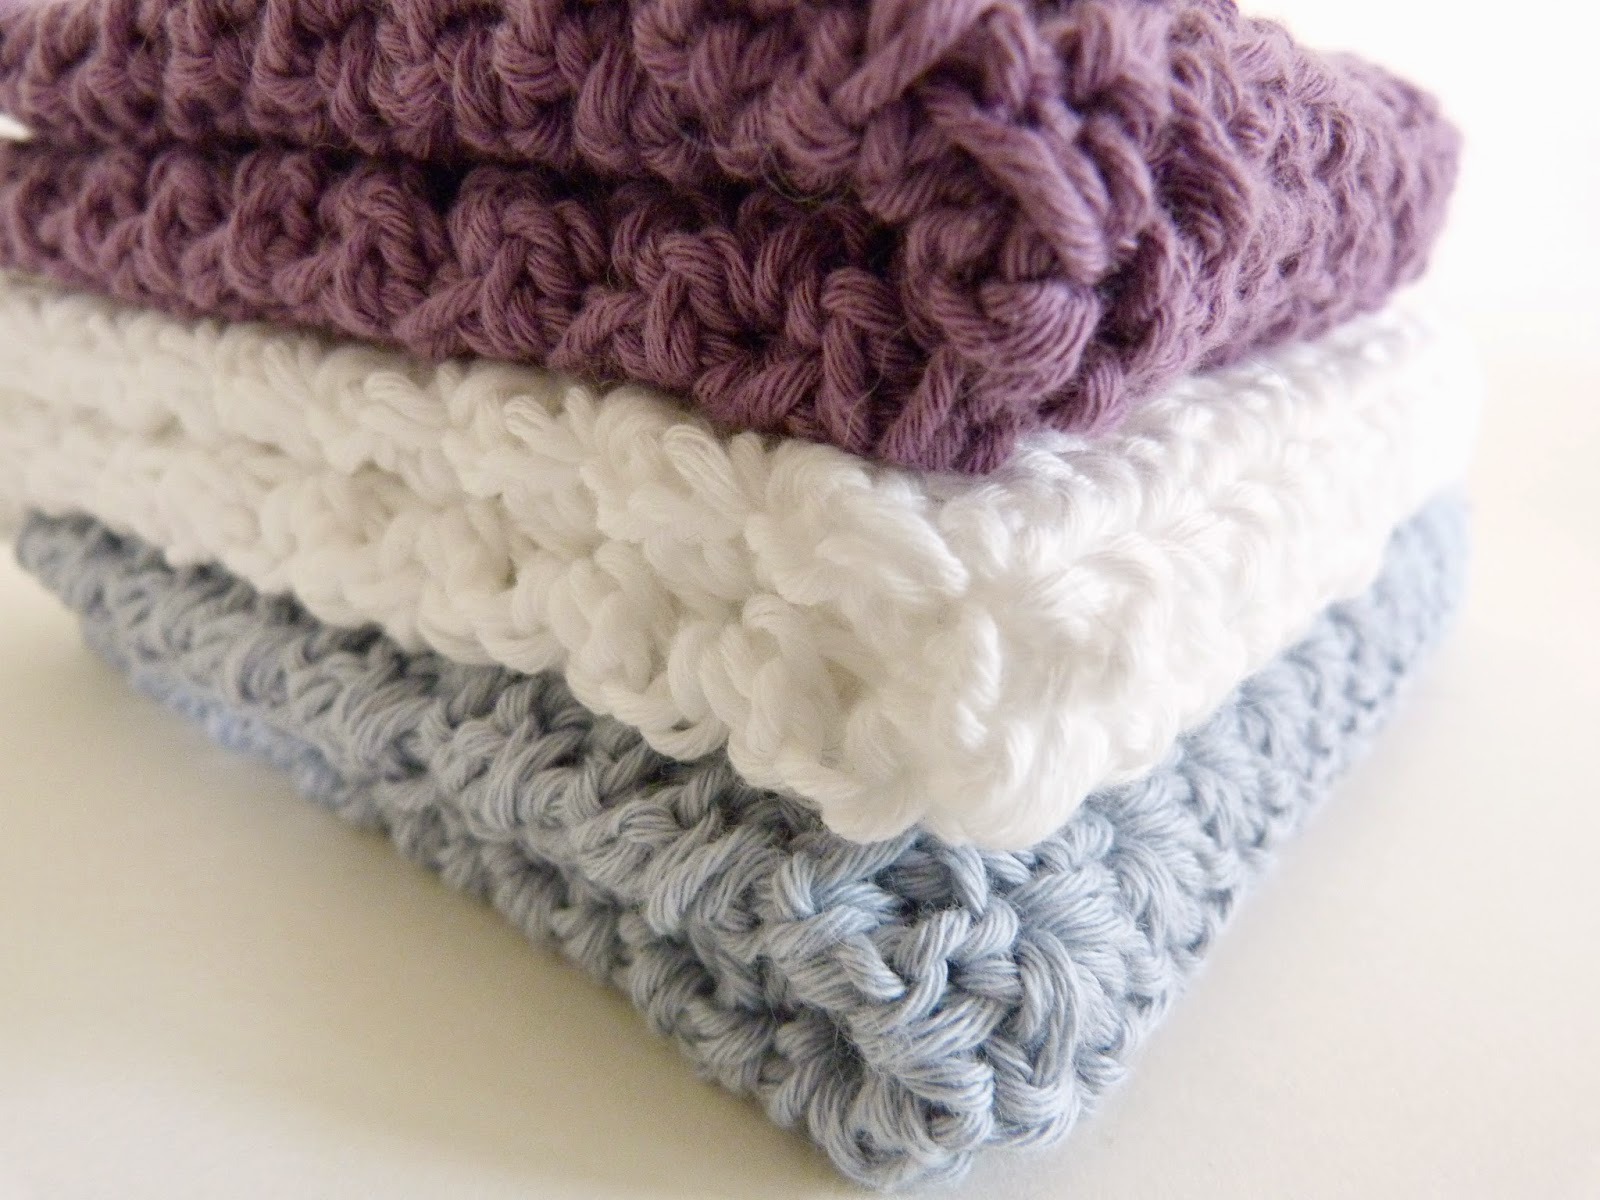 Handmade by Bunny Bosworth: Handmade Home: Crochet Face Cloths